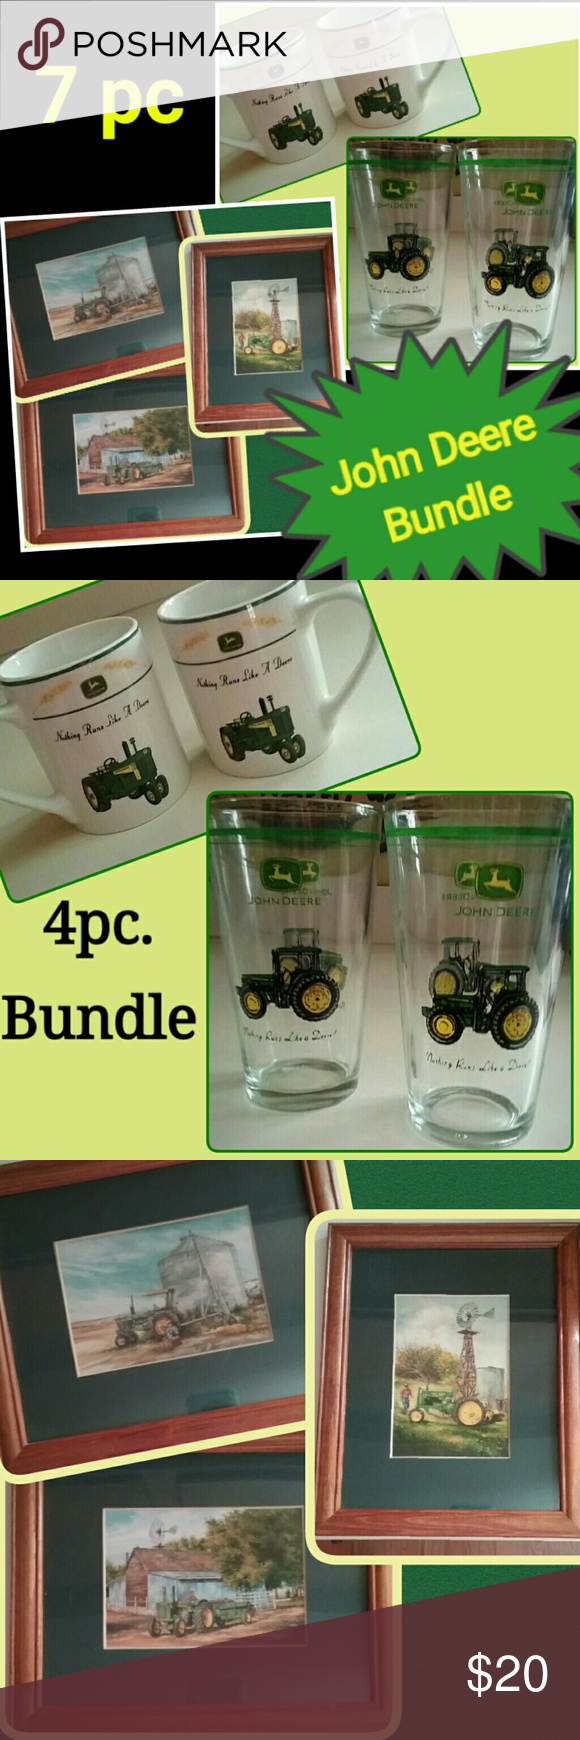 John Deere Home Decor Bundle My Posh Closet Pinterest Home